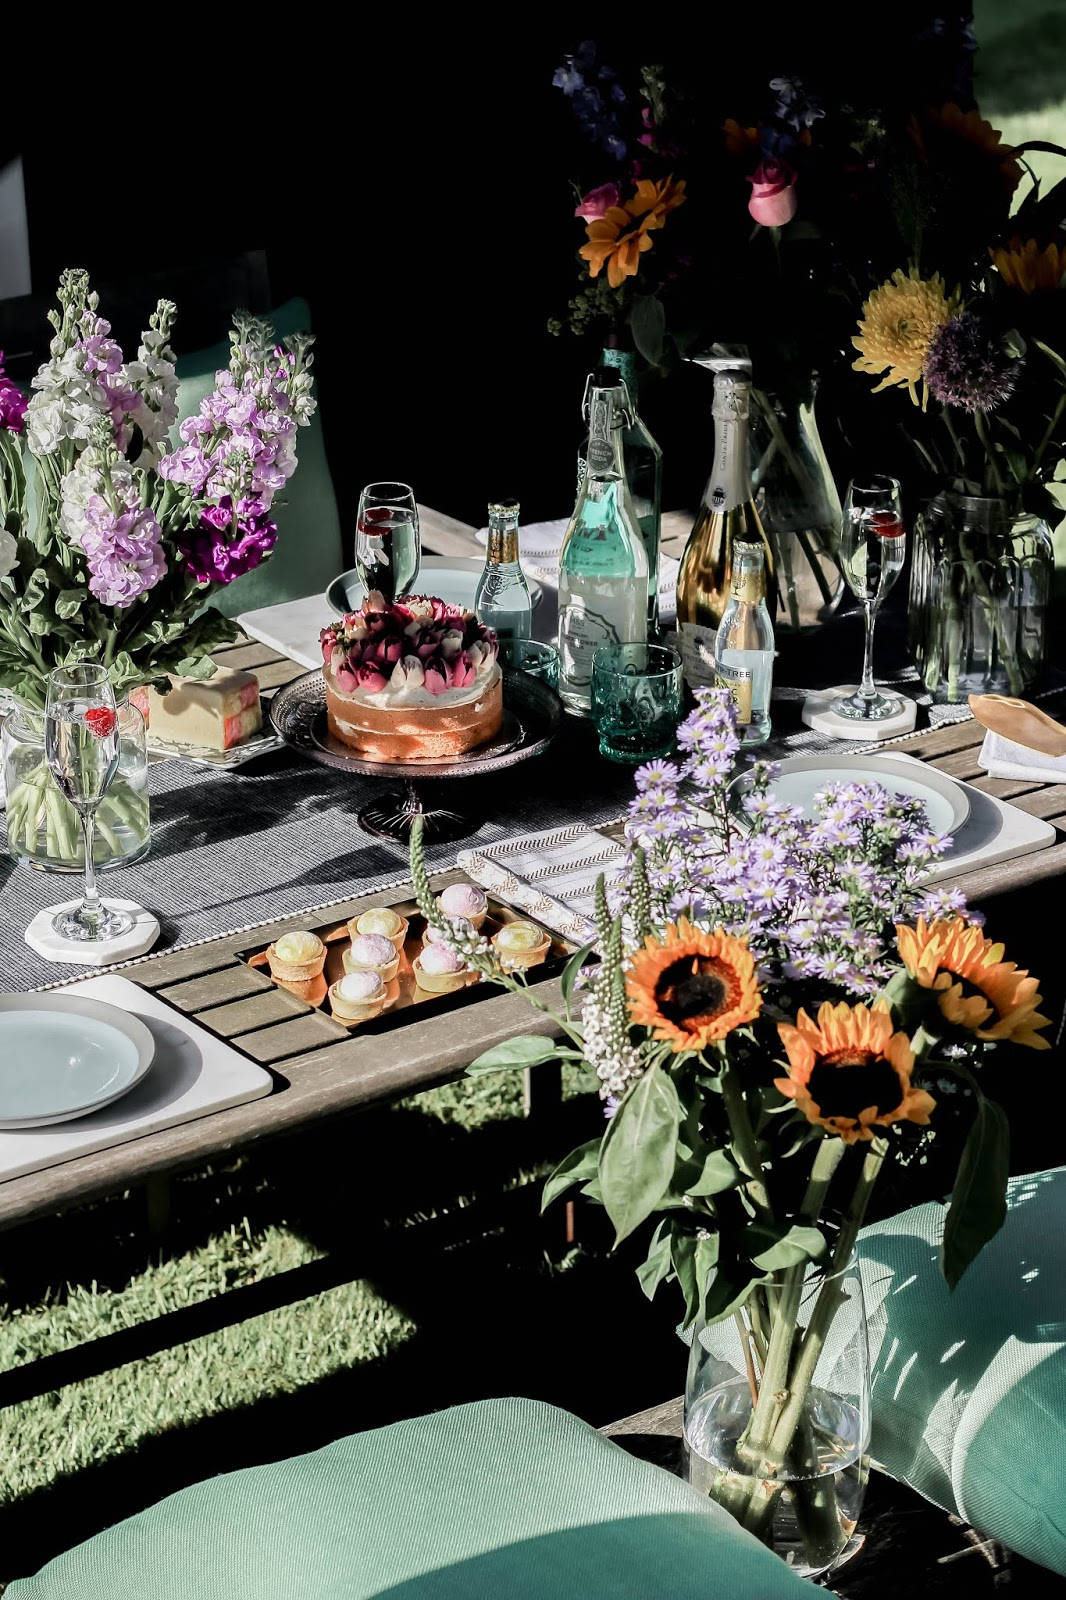 Al Fresco Colourful Summer Dining